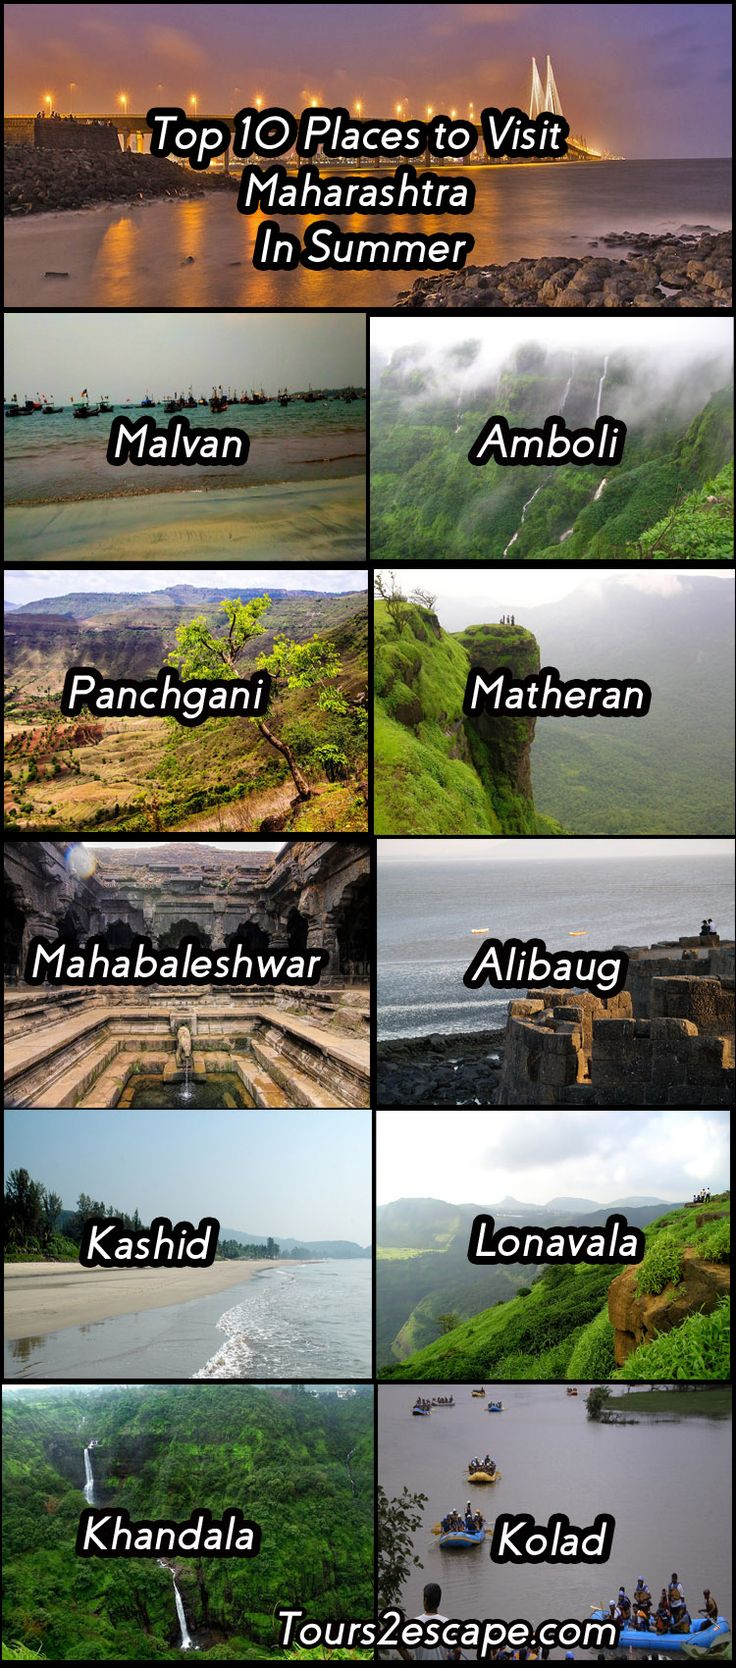 10 best places to visit in #Maharashtra #India especially in summer